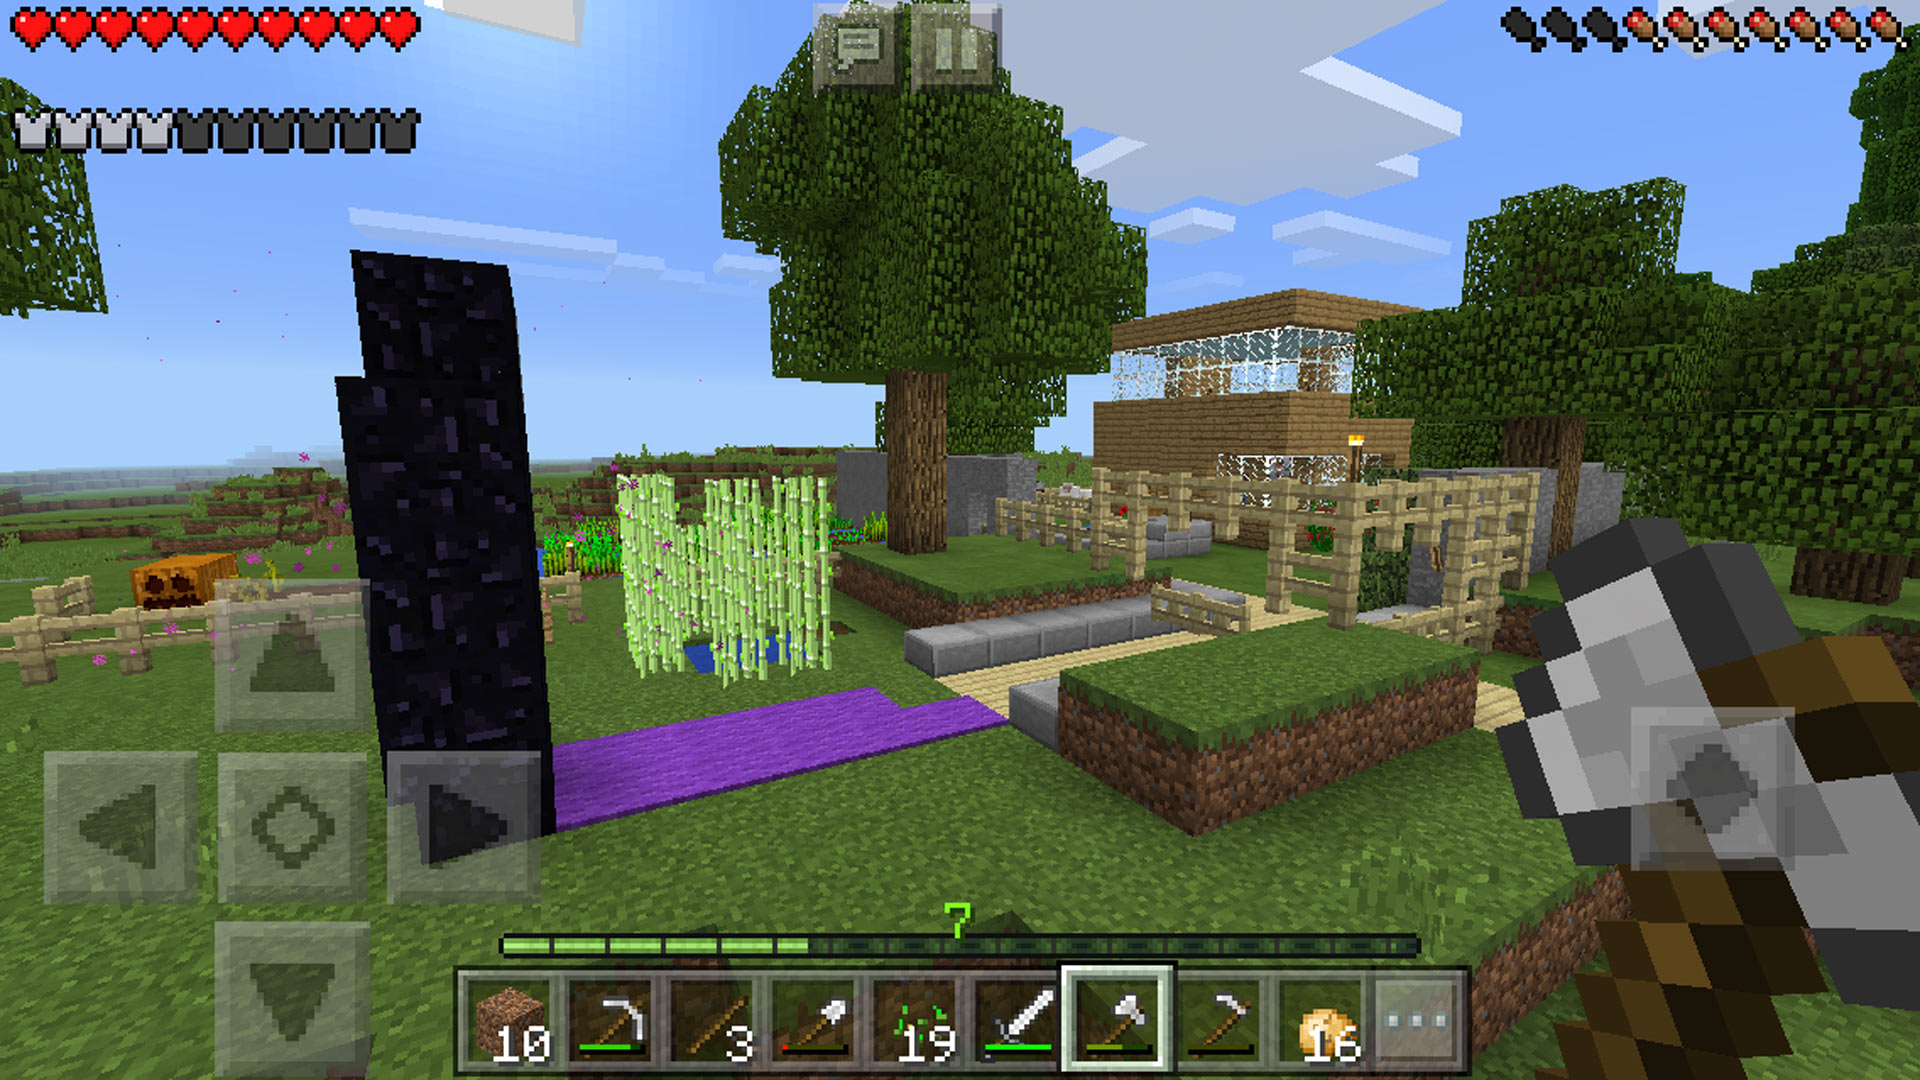 Minecraft Pocket Edition Skycaptin5 Skyland world